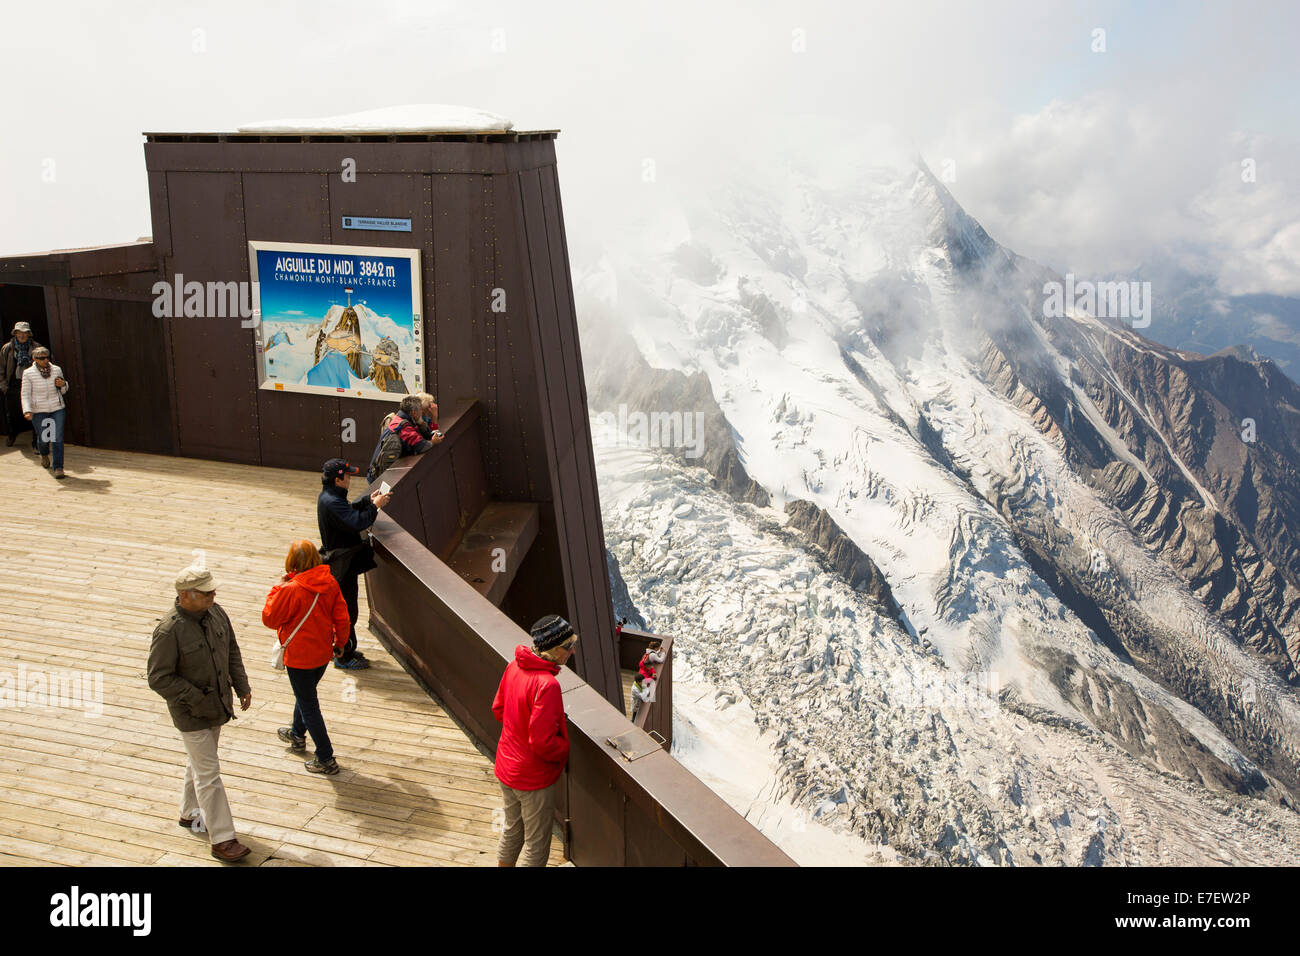 Mont Blanc from the Aiguille Du Midi above Chamonix, France. - Stock Image